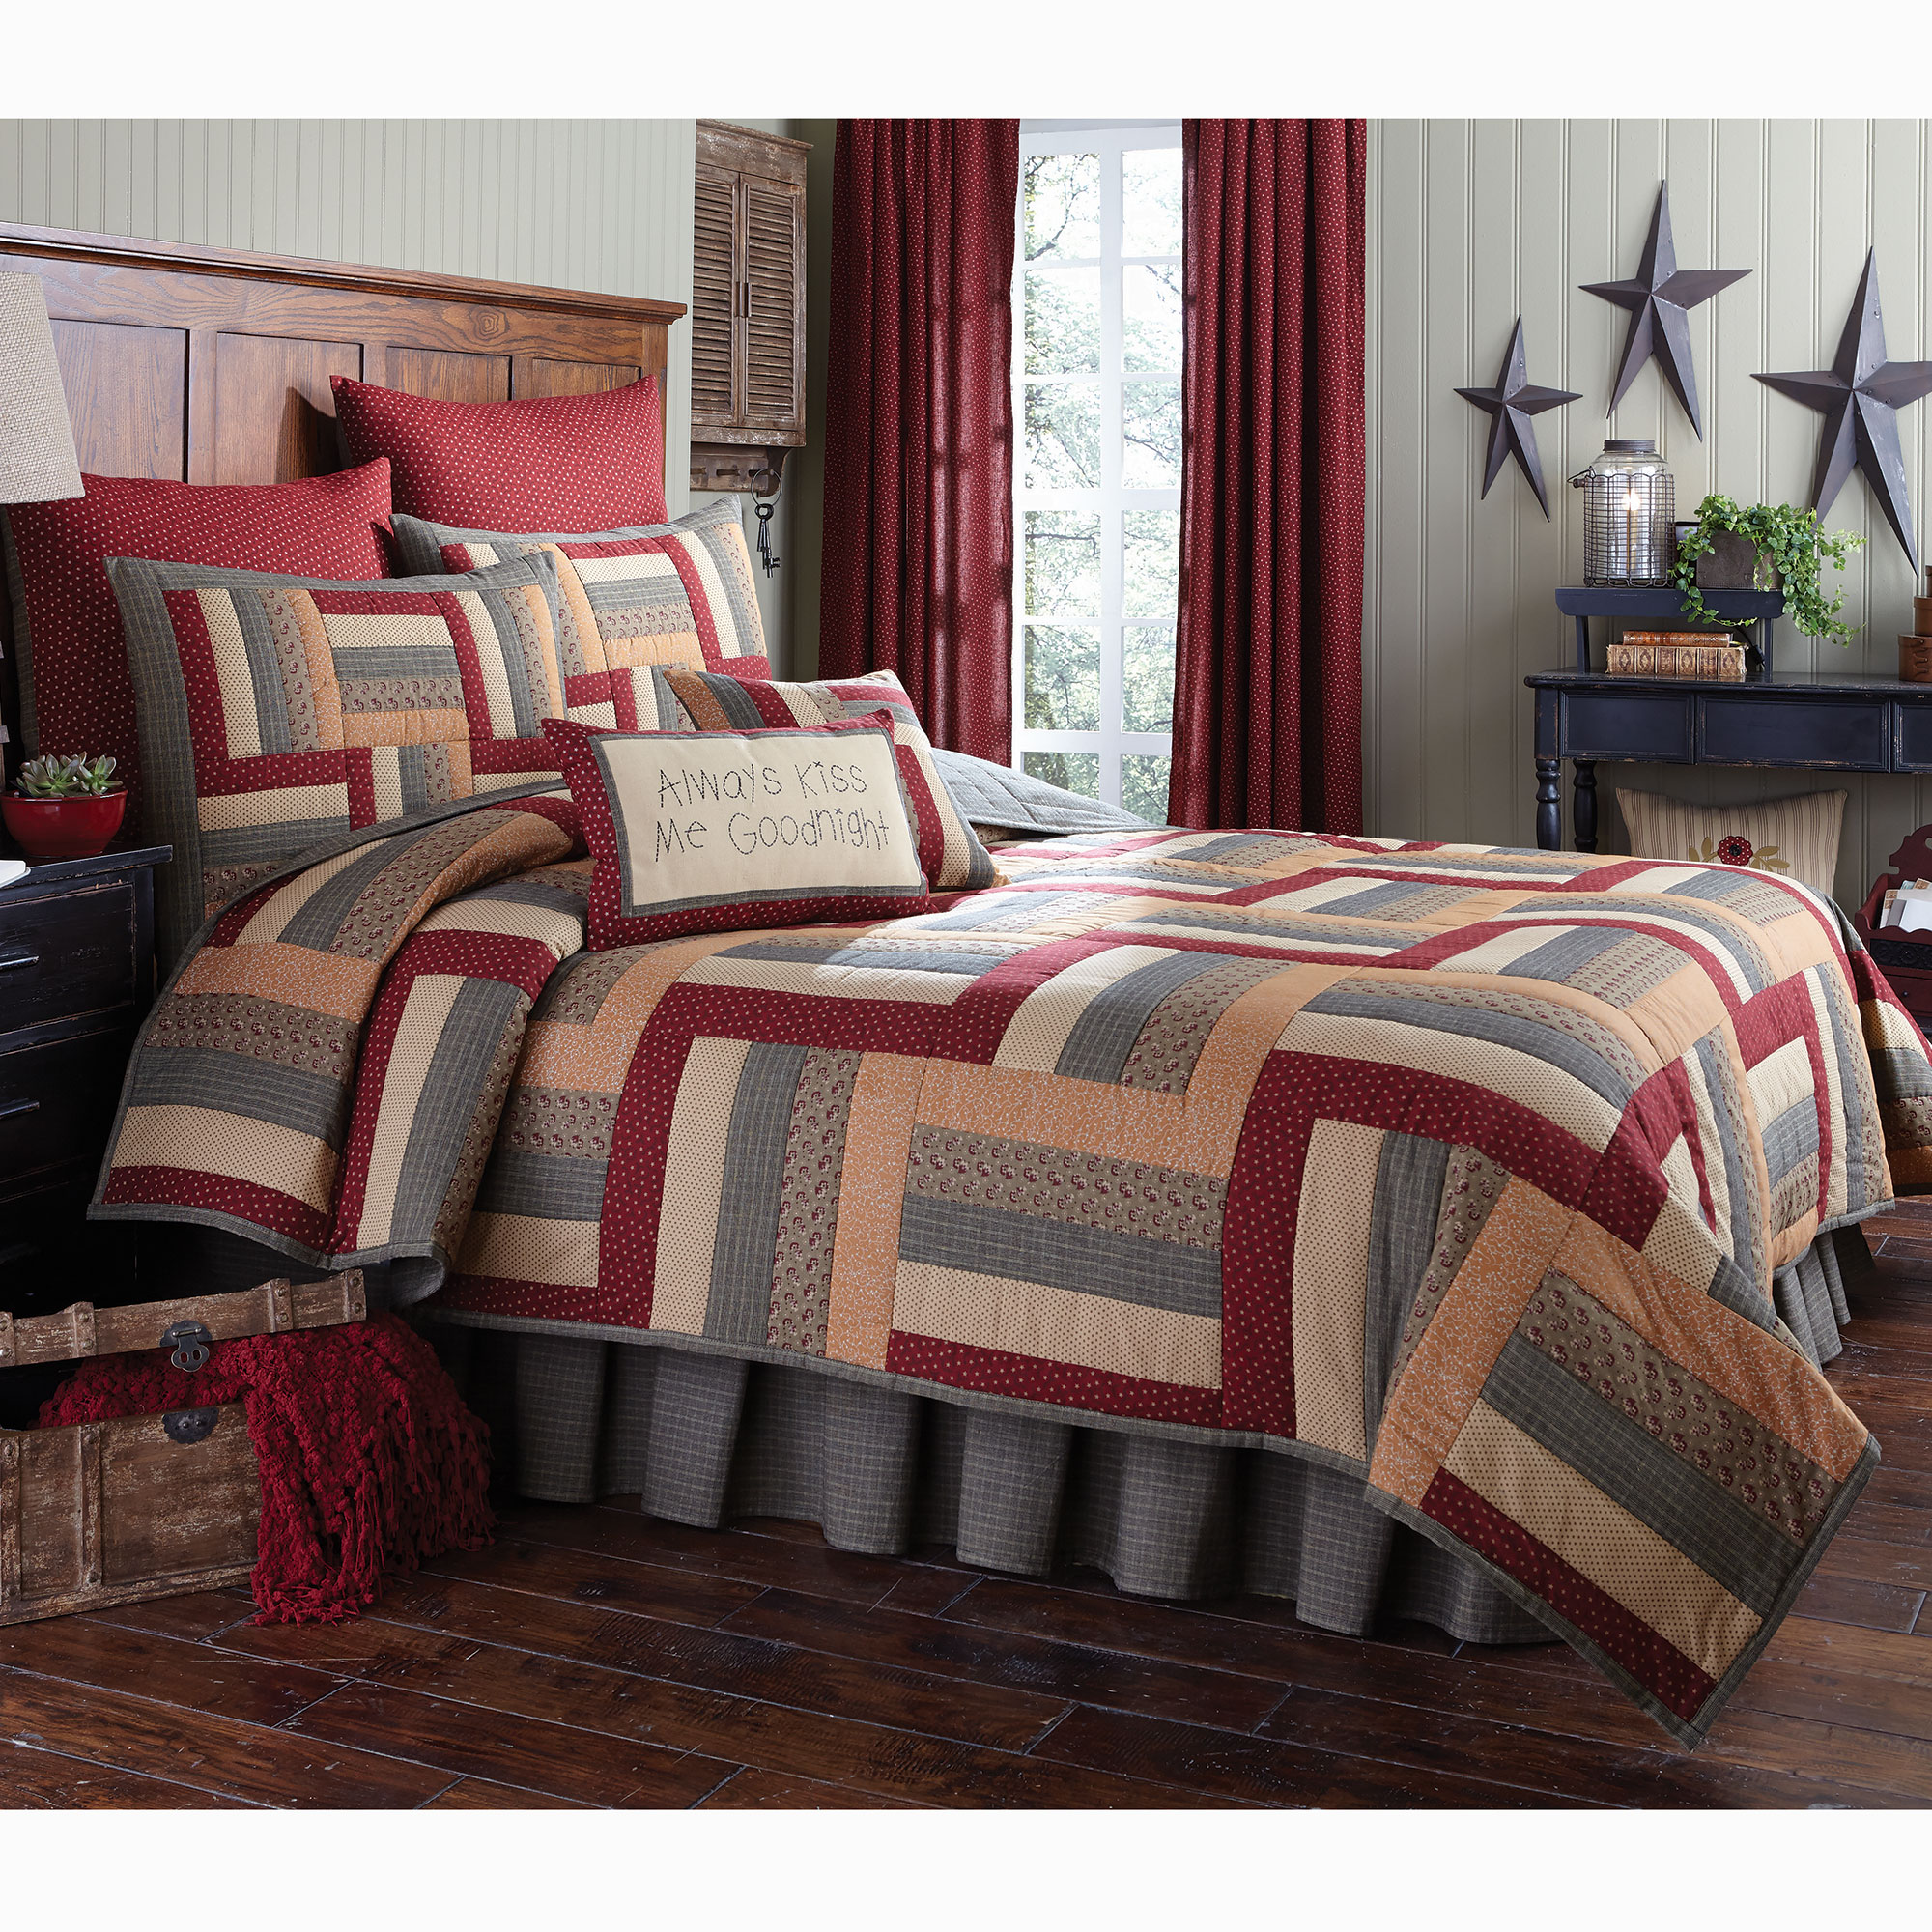 PKD-383-92-Hearth-and-Home-King-Quilt-LRG